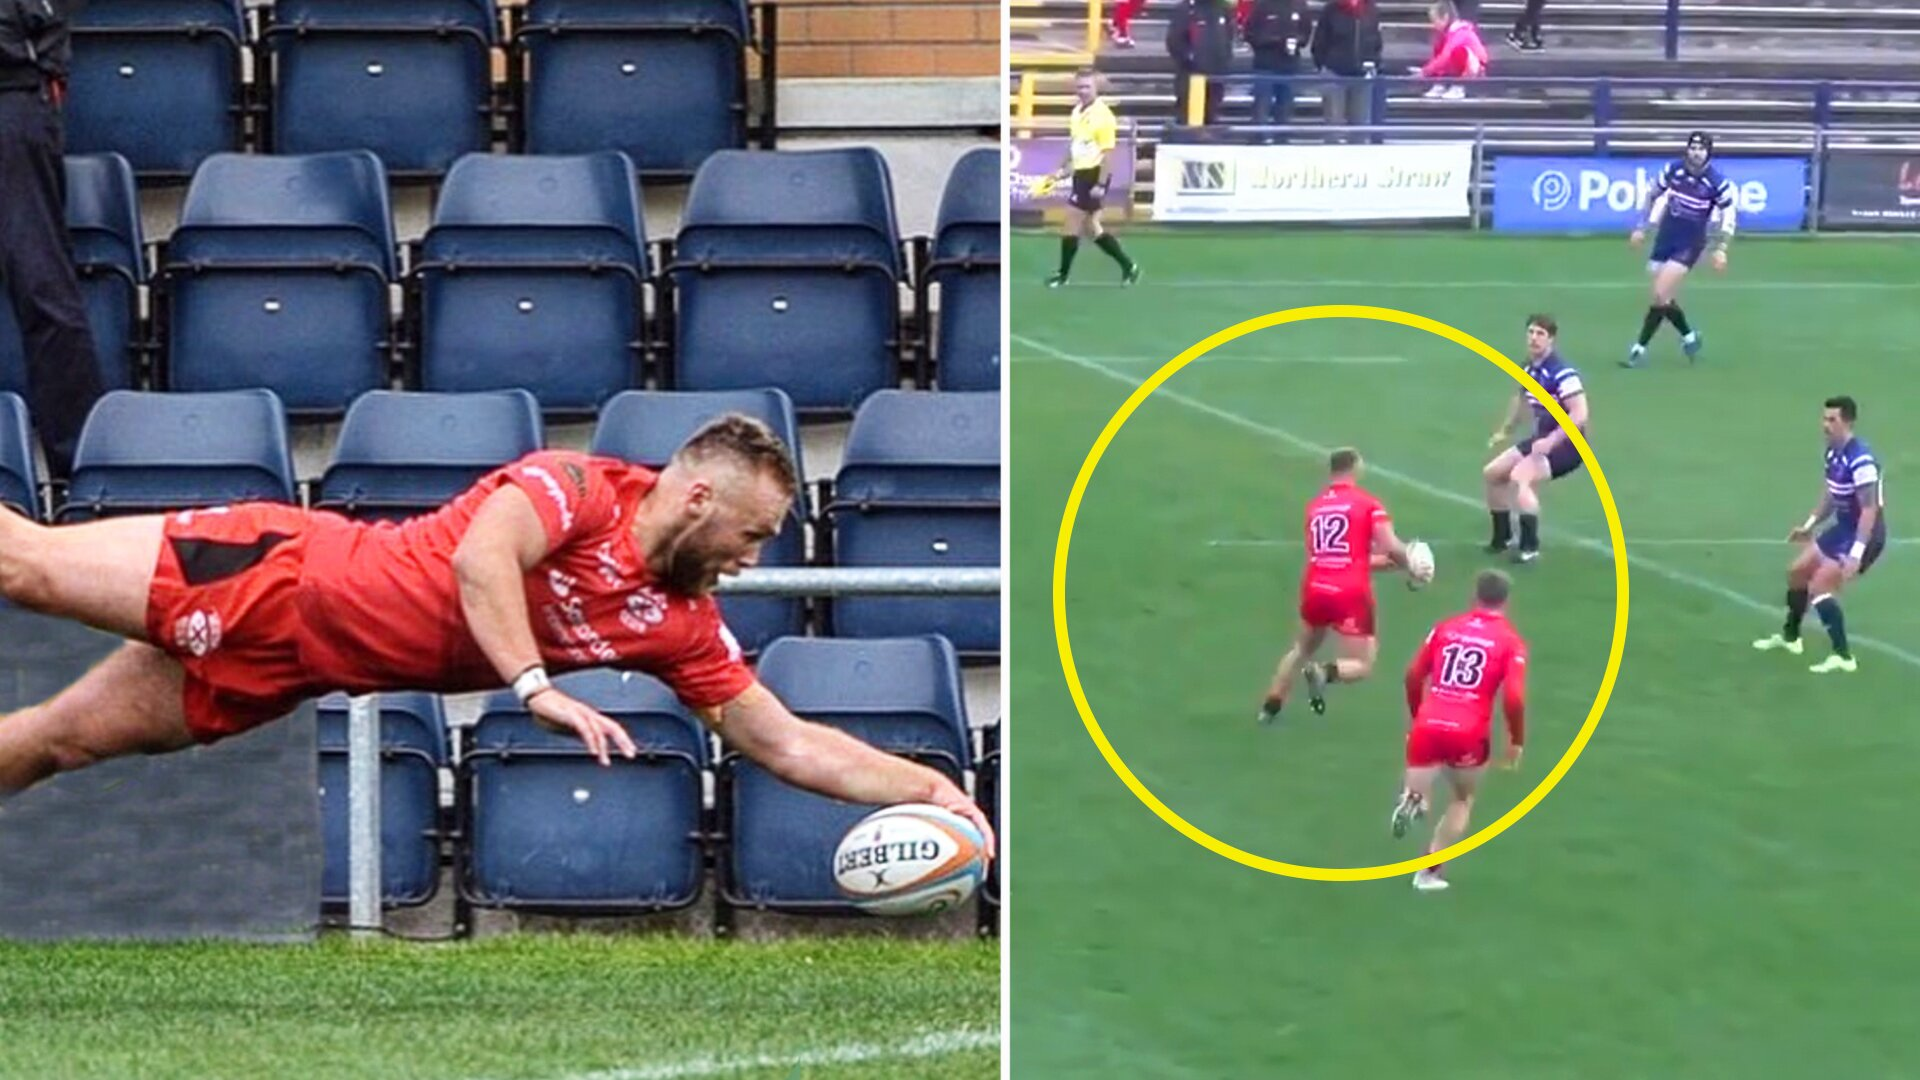 People are losing their minds at the phenomenal handling skills of this Championship rugby player